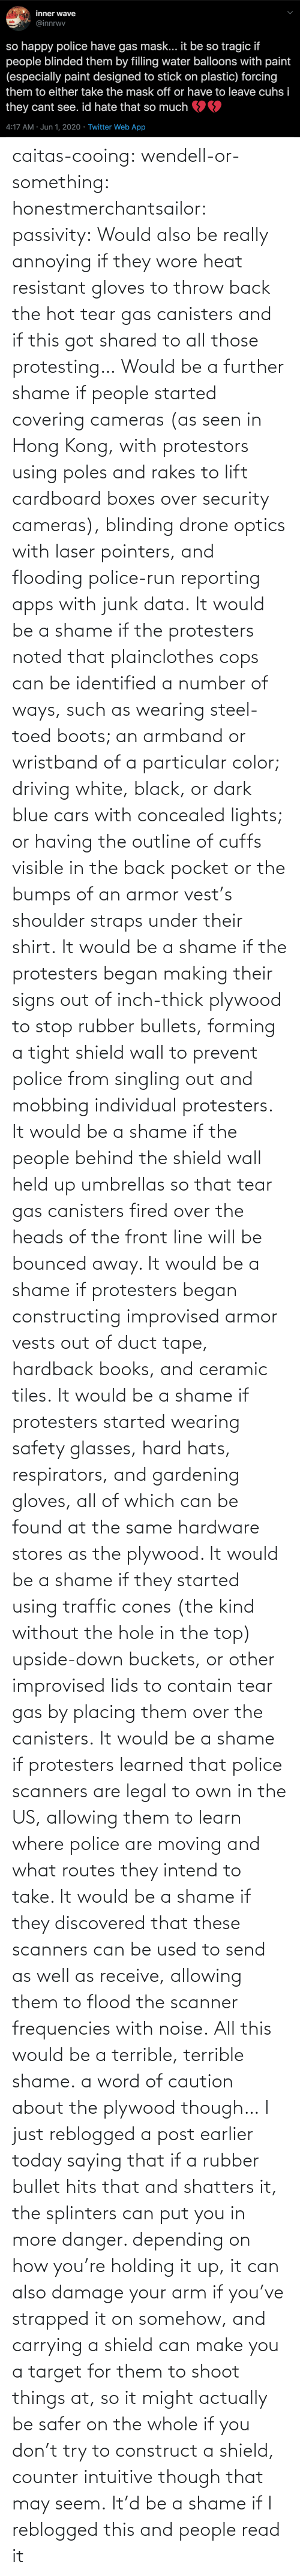 lift: caitas-cooing:  wendell-or-something: honestmerchantsailor:  passivity: Would also be really annoying if they wore heat resistant gloves to throw back the hot tear gas canisters and if this got shared to all those protesting… Would be a further shame if people started covering cameras (as seen in Hong Kong, with protestors using poles and rakes to lift cardboard boxes over security cameras), blinding drone optics with laser pointers, and flooding police-run reporting apps with junk data. It would be a shame if the protesters noted that plainclothes cops can be identified a number of ways, such as wearing steel-toed boots; an armband or wristband of a particular color; driving white, black, or dark blue cars with concealed lights; or having the outline of cuffs visible in the back pocket or the bumps of an armor vest's shoulder straps under their shirt. It would be a shame if the protesters began making their signs out of inch-thick plywood to stop rubber bullets, forming a tight shield wall to prevent police from singling out and mobbing individual protesters. It would be a shame if the people behind the shield wall held up umbrellas so that tear gas canisters fired over the heads of the front line will be bounced away. It would be a shame if protesters began constructing improvised armor vests out of duct tape, hardback books, and ceramic tiles. It would be a shame if protesters started wearing safety glasses, hard hats, respirators, and gardening gloves, all of which can be found at the same hardware stores as the plywood. It would be a shame if they started using traffic cones (the kind without the hole in the top) upside-down buckets, or other improvised lids to contain tear gas by placing them over the canisters. It would be a shame if protesters learned that police scanners are legal to own in the US, allowing them to learn where police are moving and what routes they intend to take. It would be a shame if they discovered that these scanners can be used to send as well as receive, allowing them to flood the scanner frequencies with noise. All this would be a terrible, terrible shame.    a word of caution about the plywood though… I just reblogged a post earlier today saying that if a rubber bullet hits that and shatters it, the splinters can put you in more danger. depending on how you're holding it up, it can also damage your arm if you've strapped it on somehow, and carrying a shield can make you a target for them to shoot things at, so it might actually be safer on the whole if you don't try to construct a shield, counter intuitive though that may seem.    It'd be a shame if I reblogged this and people read it